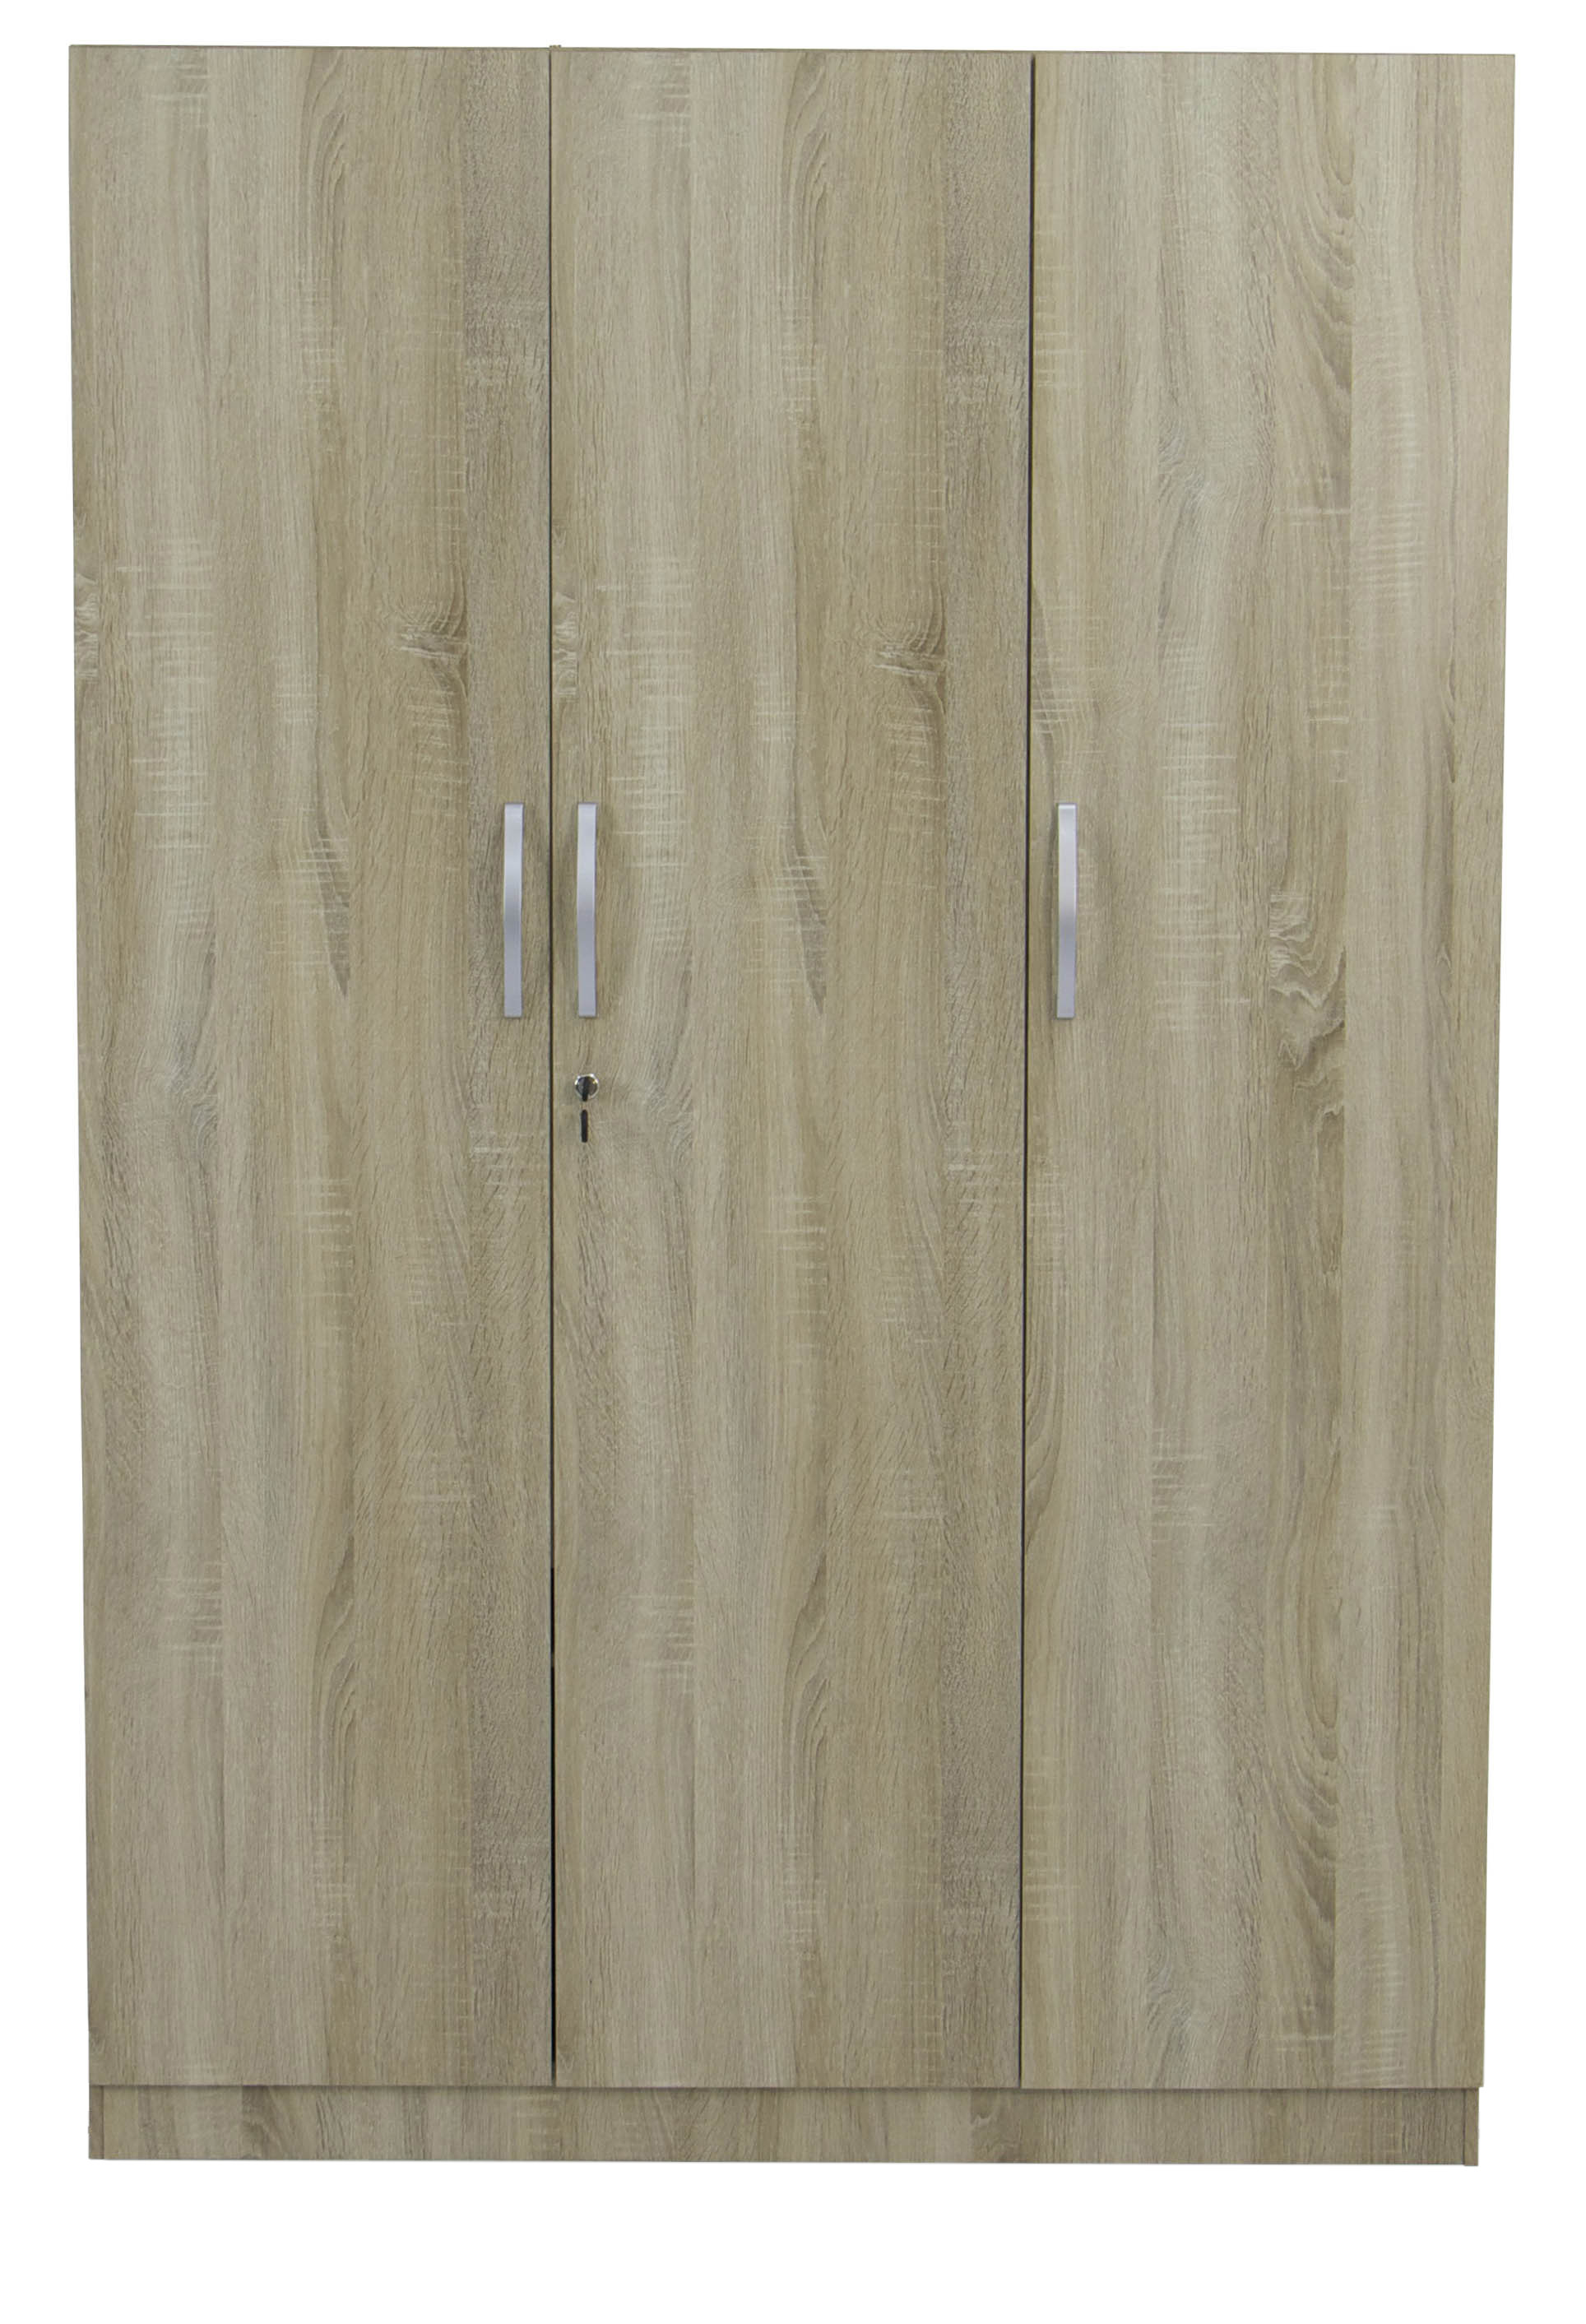 Malcom 3 door wardrobe in sonoma oak furniture home for Door 9 sonoma